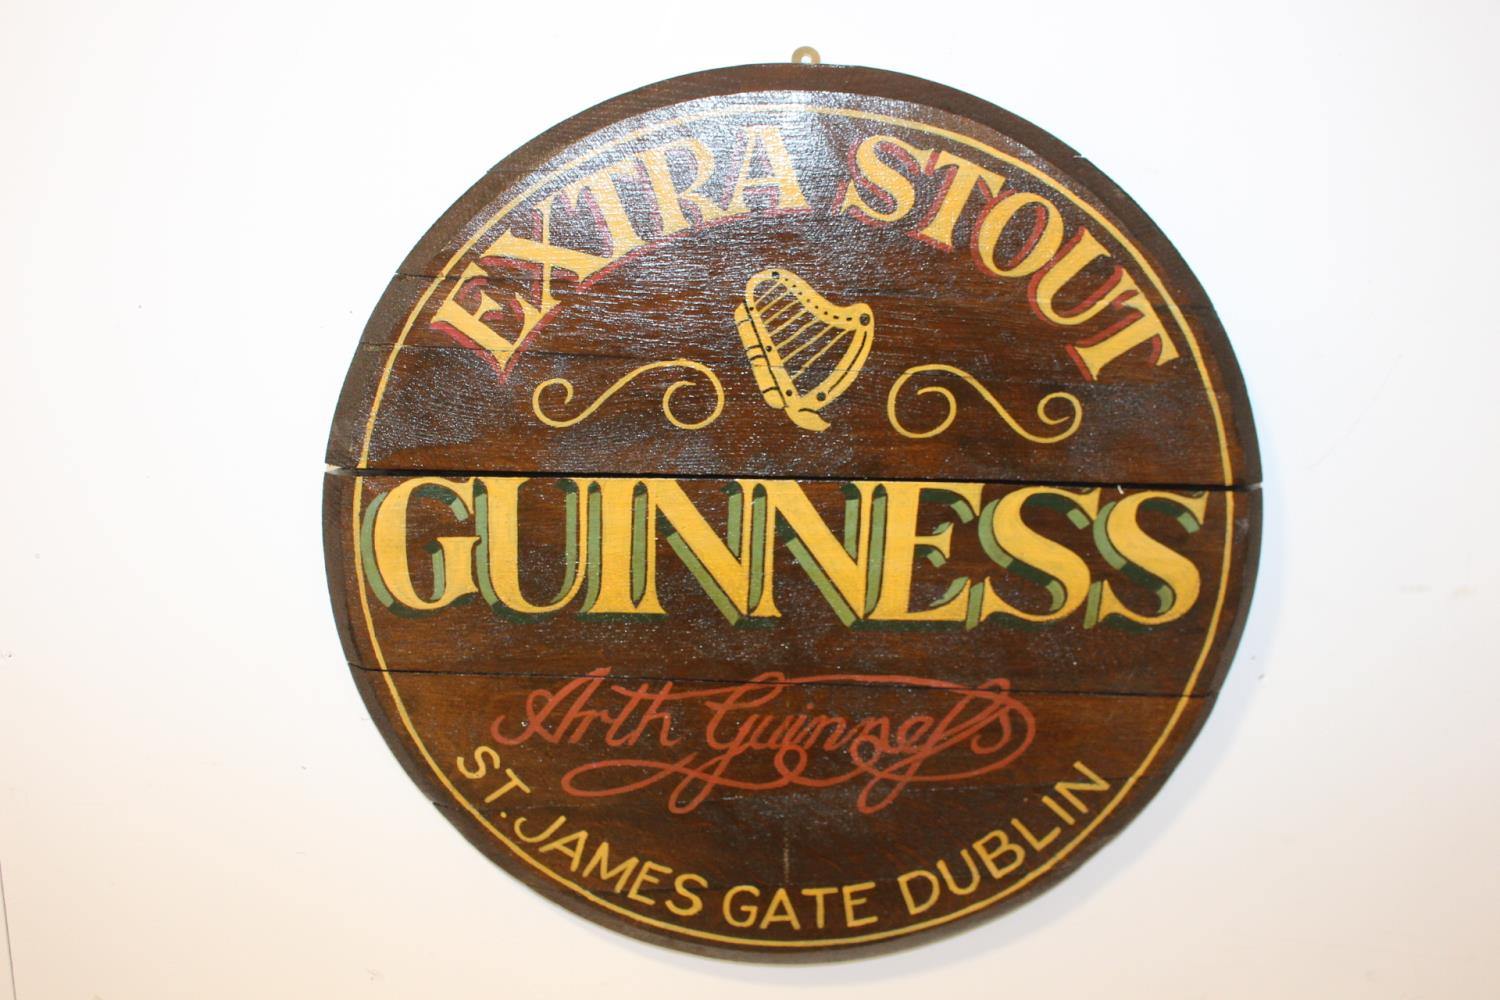 Guinness Extra Stout hand painted barrel end